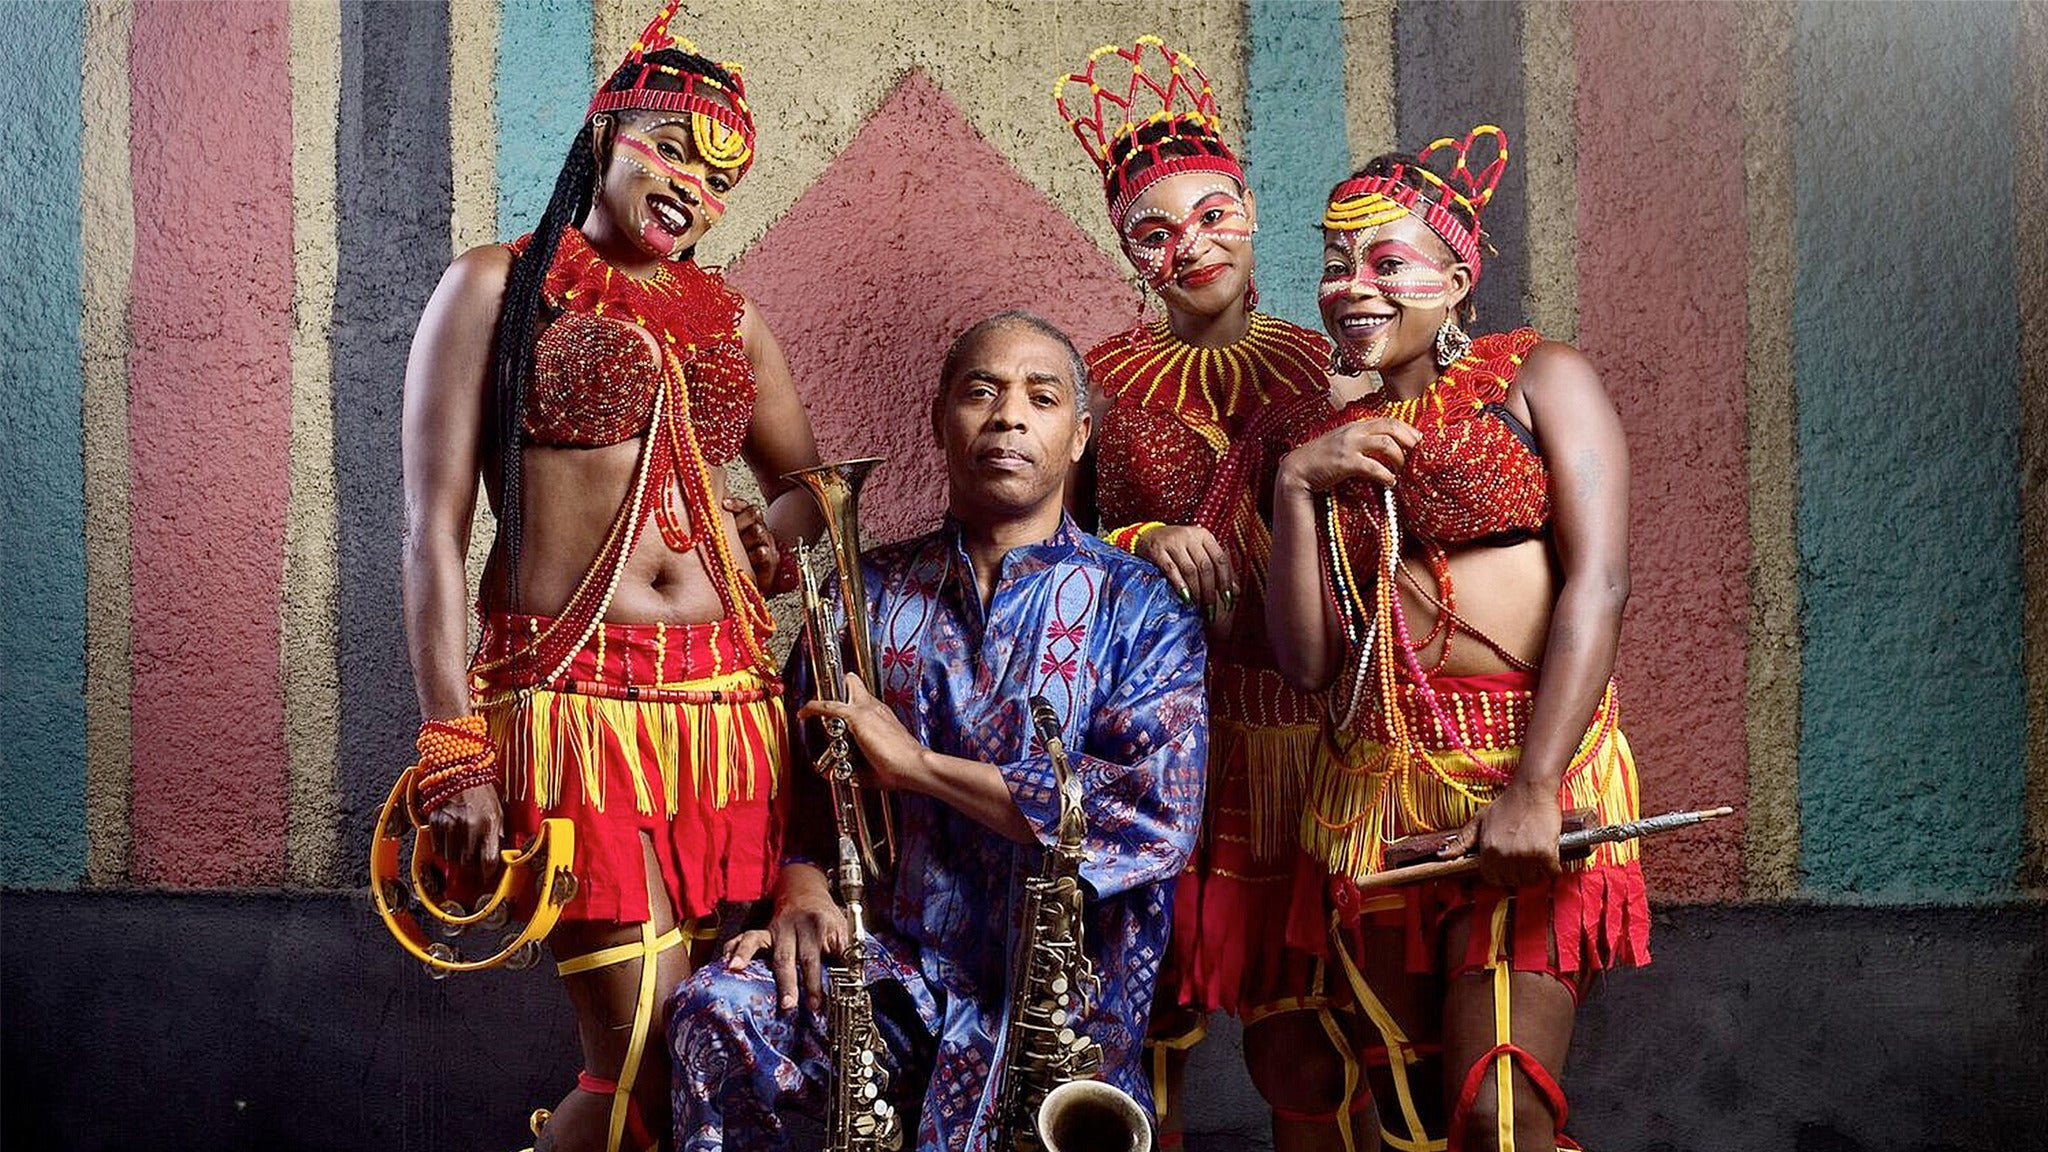 Femi Kuti at Headliners Music Hall - Louisville, KY 40204